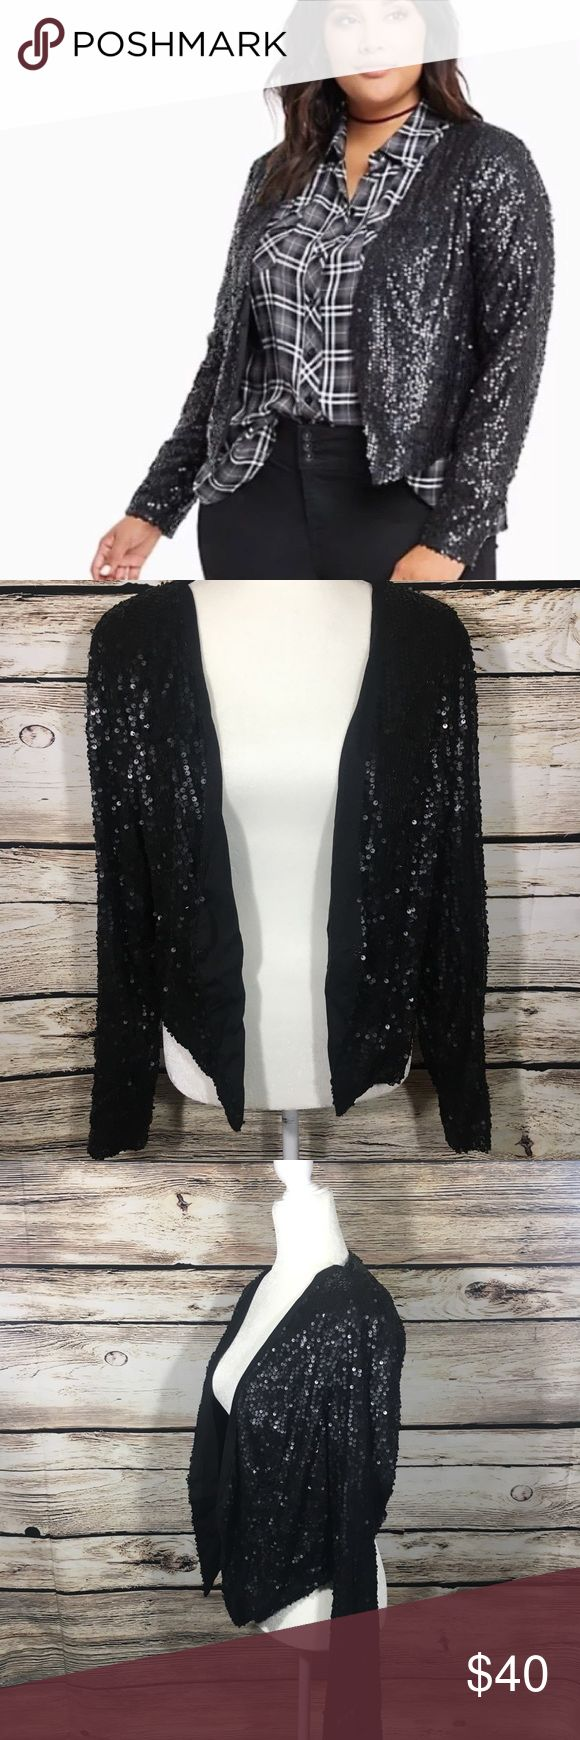 "Torrid sequin lined blazer coat black party wear 0 Torrid sequin blazer in black with sparkly sequins all over, one eye hook for closure. Size 0 which is a size large in Torrid sizing. Bust 44"", length 18"" in excellent condition with no signs of wear torrid Jackets & Coats Blazers"